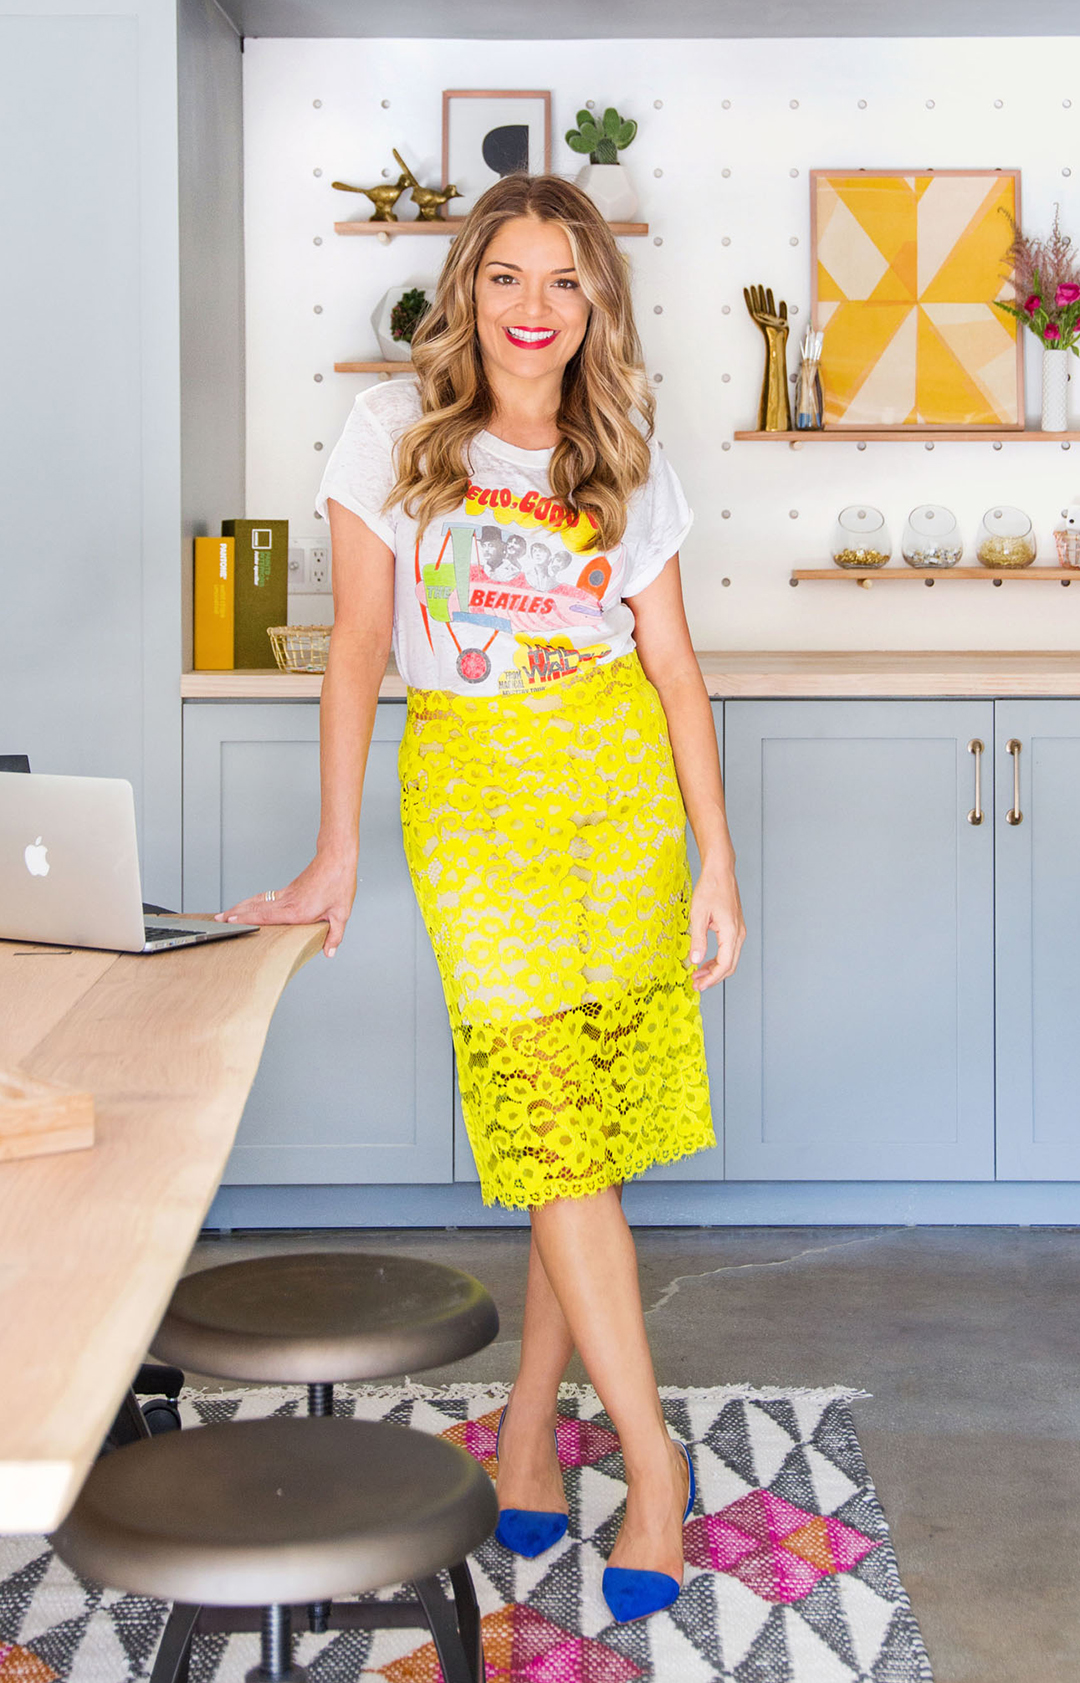 Sabrina Soto in kitchen wearing yellow skirt